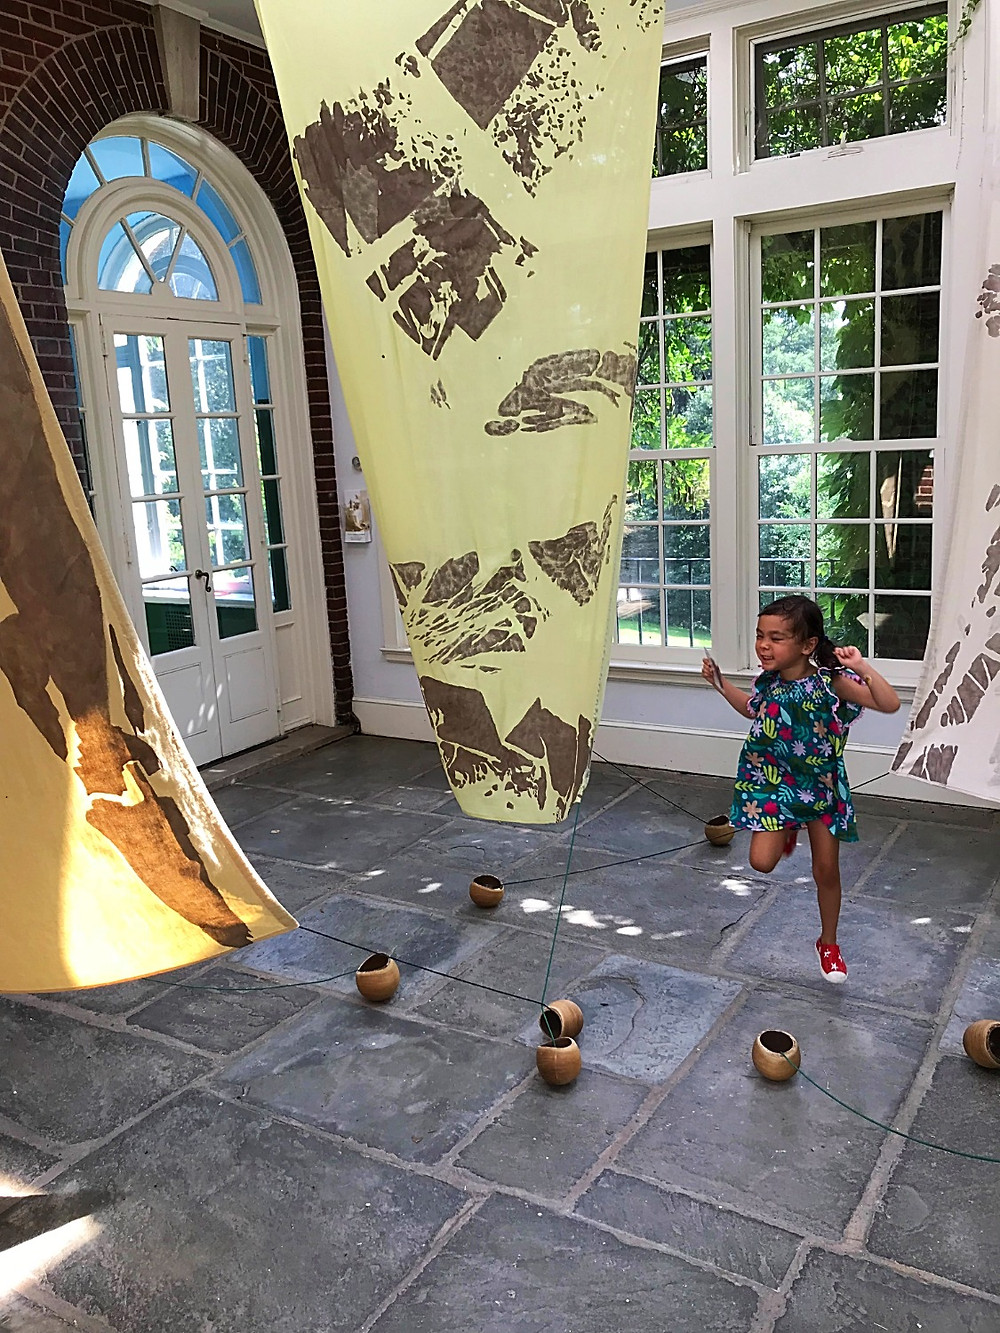 Wave Hill, NYC Botanical Garden, kids in nature, NYC hidden gem, Family Art Project, Curious G and Me, Glyndor Gallery, Sunroom Project Space